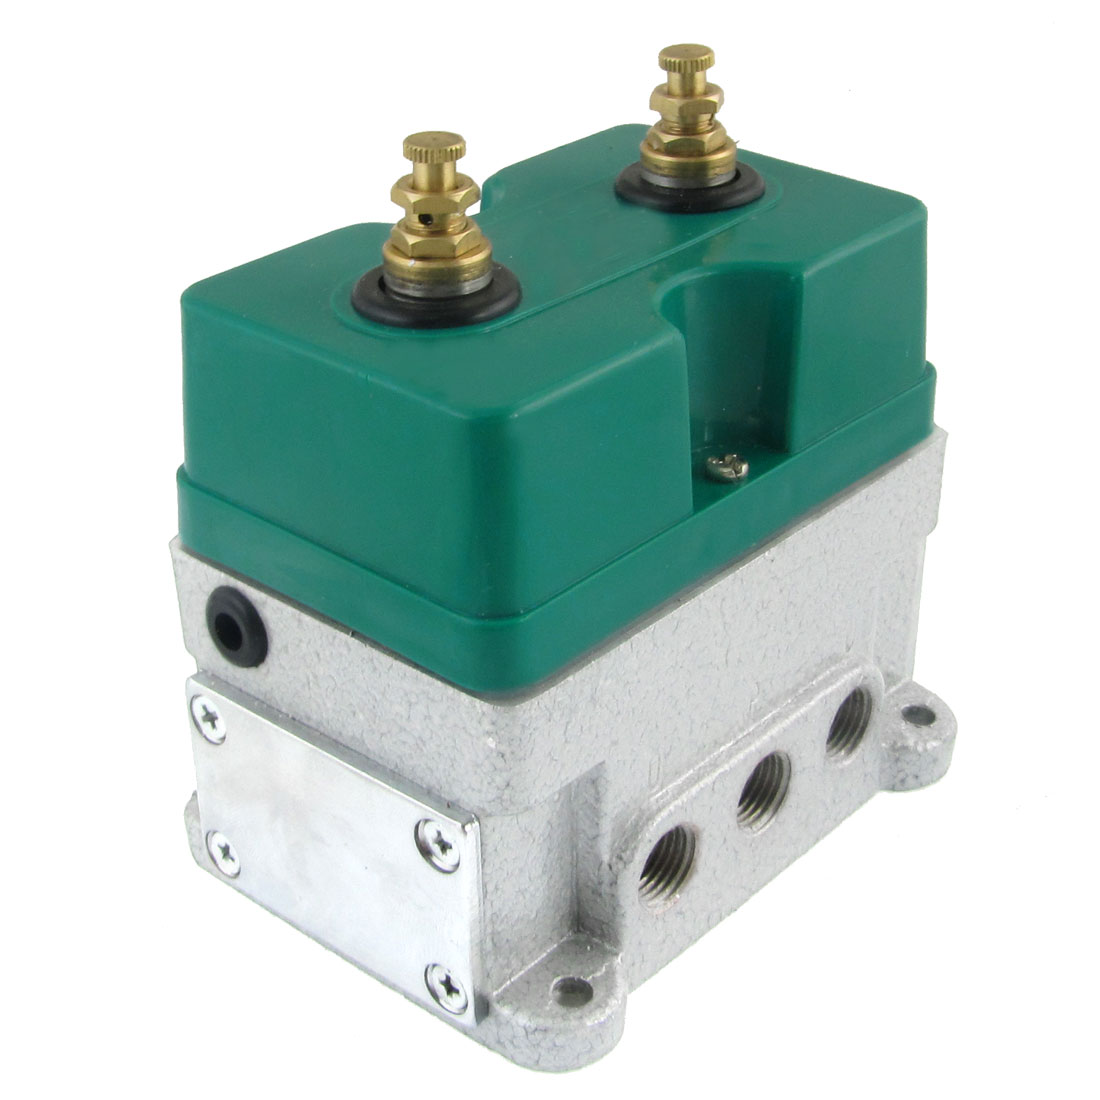 8mm-1-4-Bore-Two-Position-Five-Way-Solenoid-Valve-DC-24V-100mA